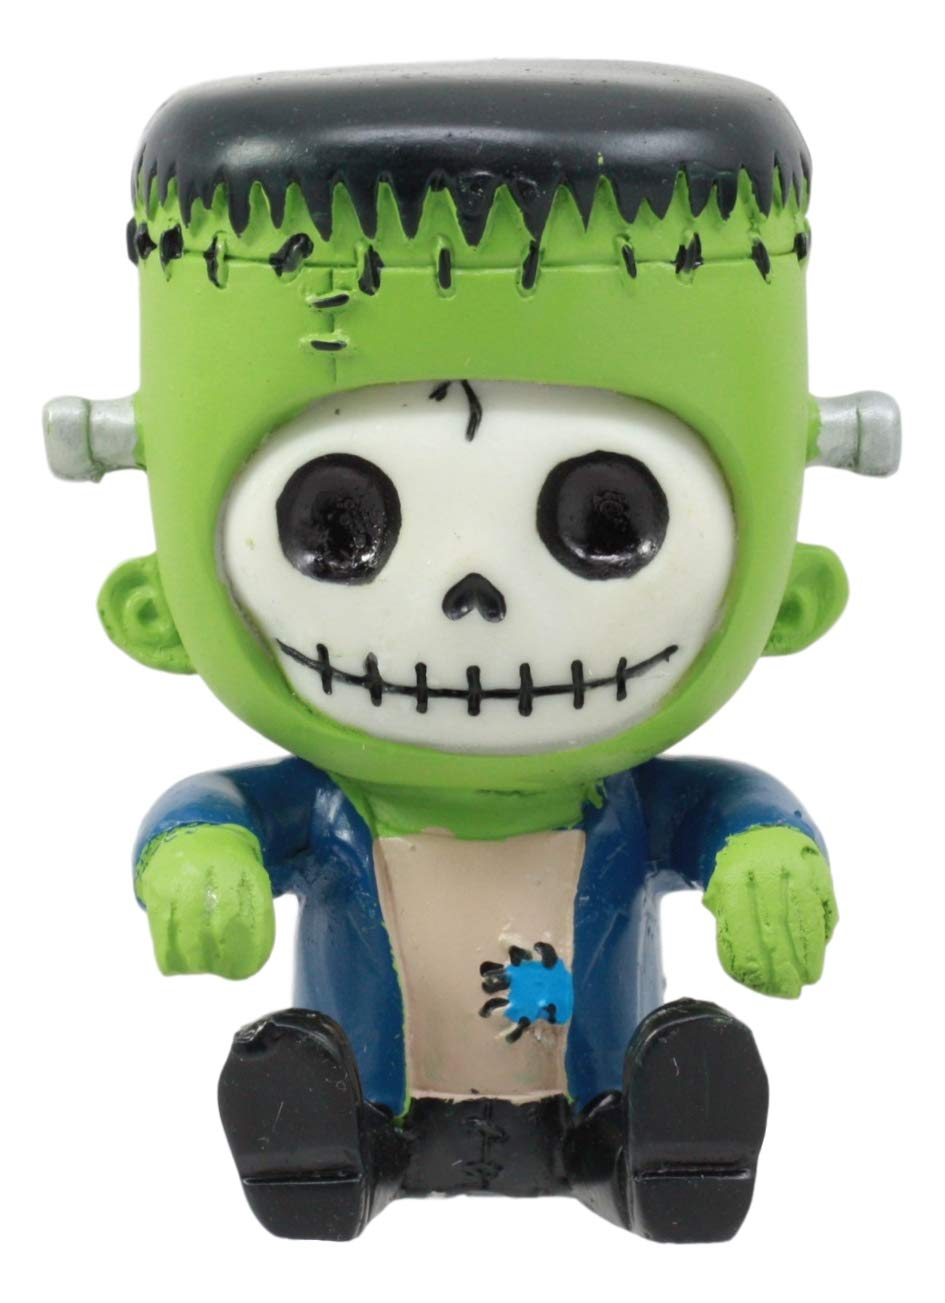 Ebros Frankie The Frankenstein Furrybones Figurine Small 3 Inch Tall Furry Bones Skeleton Monster Decor Statue As Halloween Gothic Fun Toys Collectible